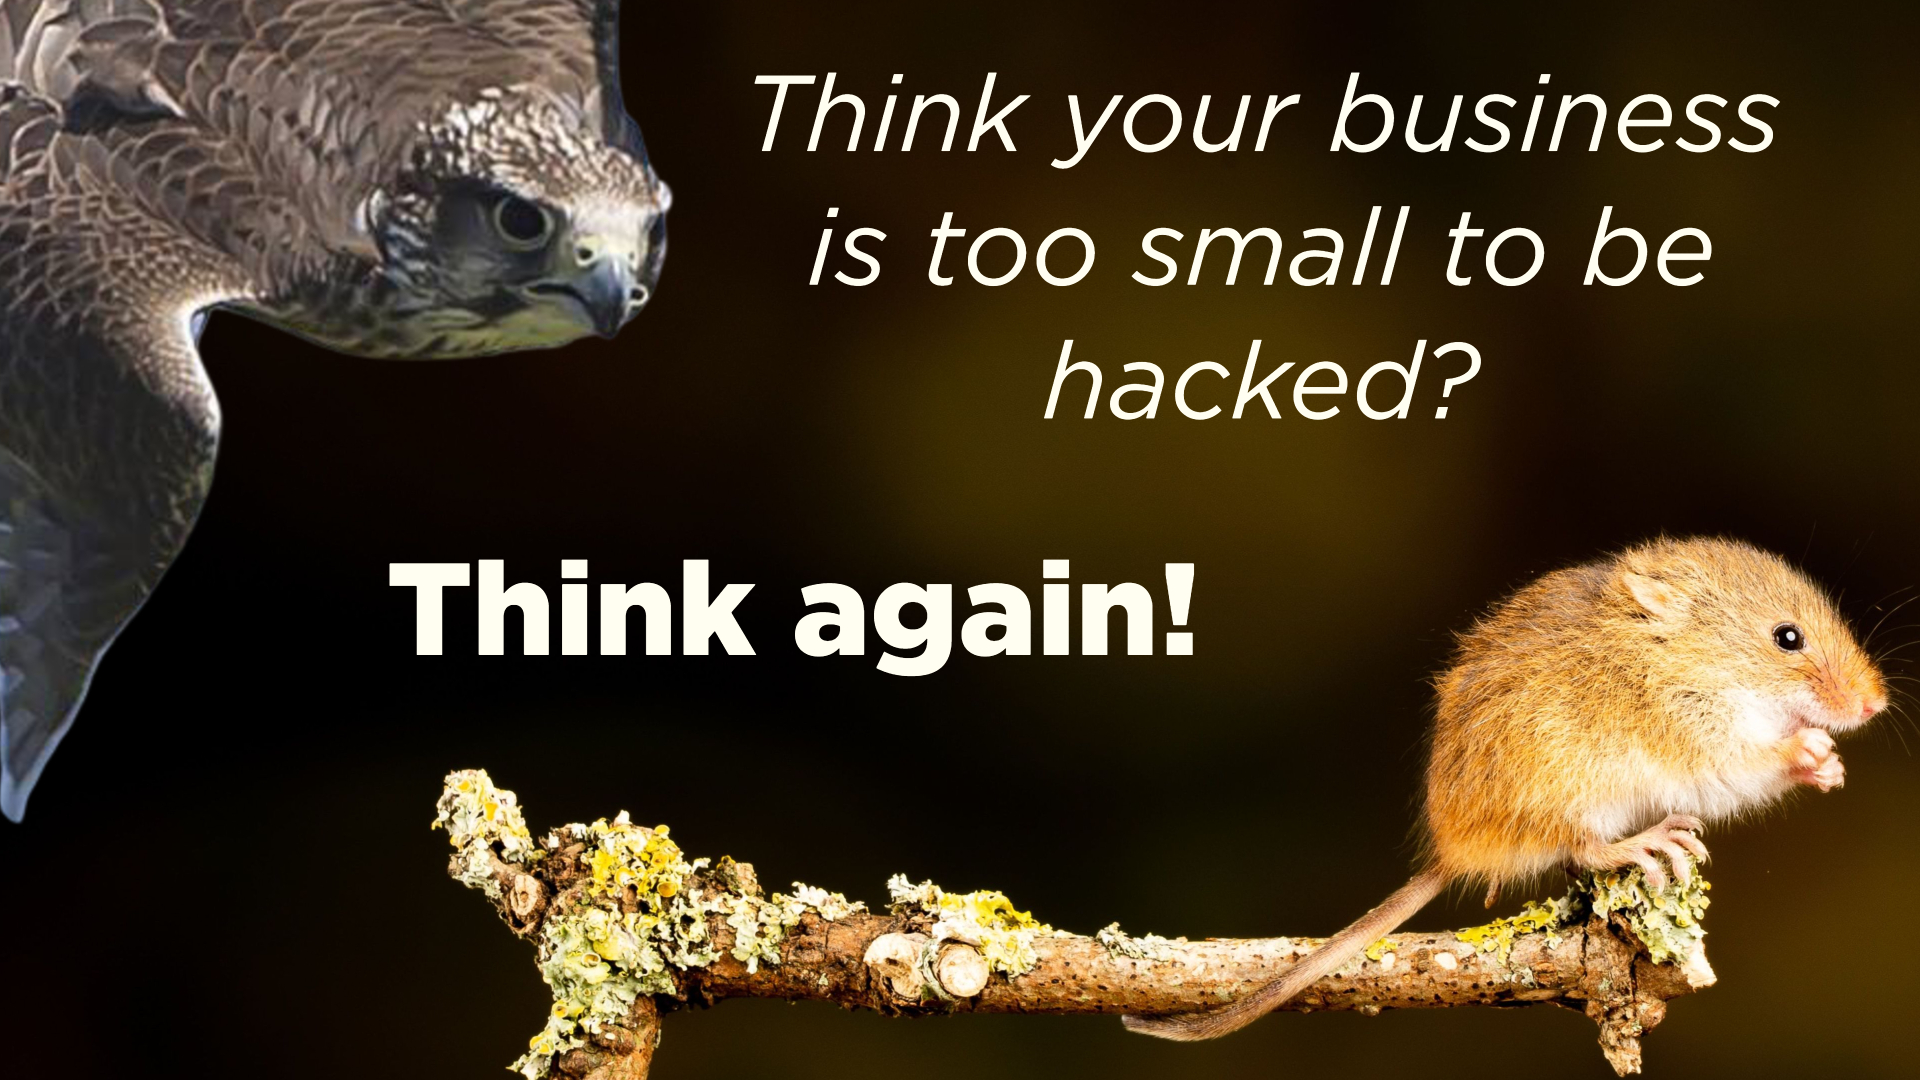 Think your business is too small to be hacked? Think again!